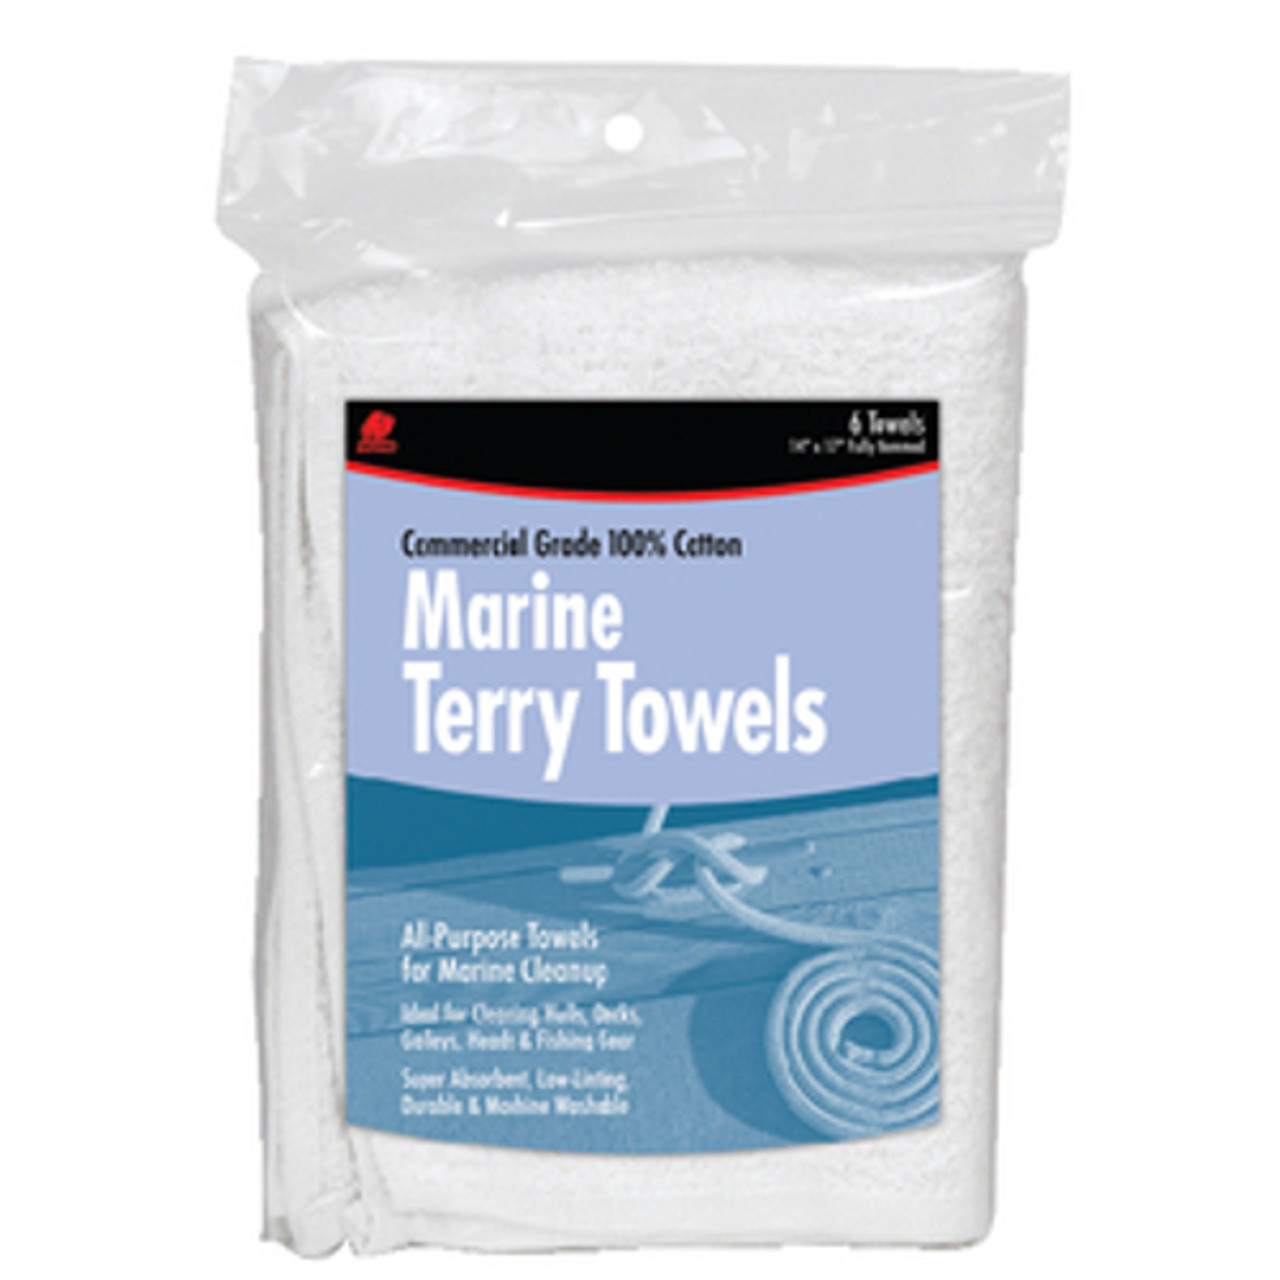 Buffalo Industries 6 Pack of Marine Cotton Terry Towels - 14 x 17 inch